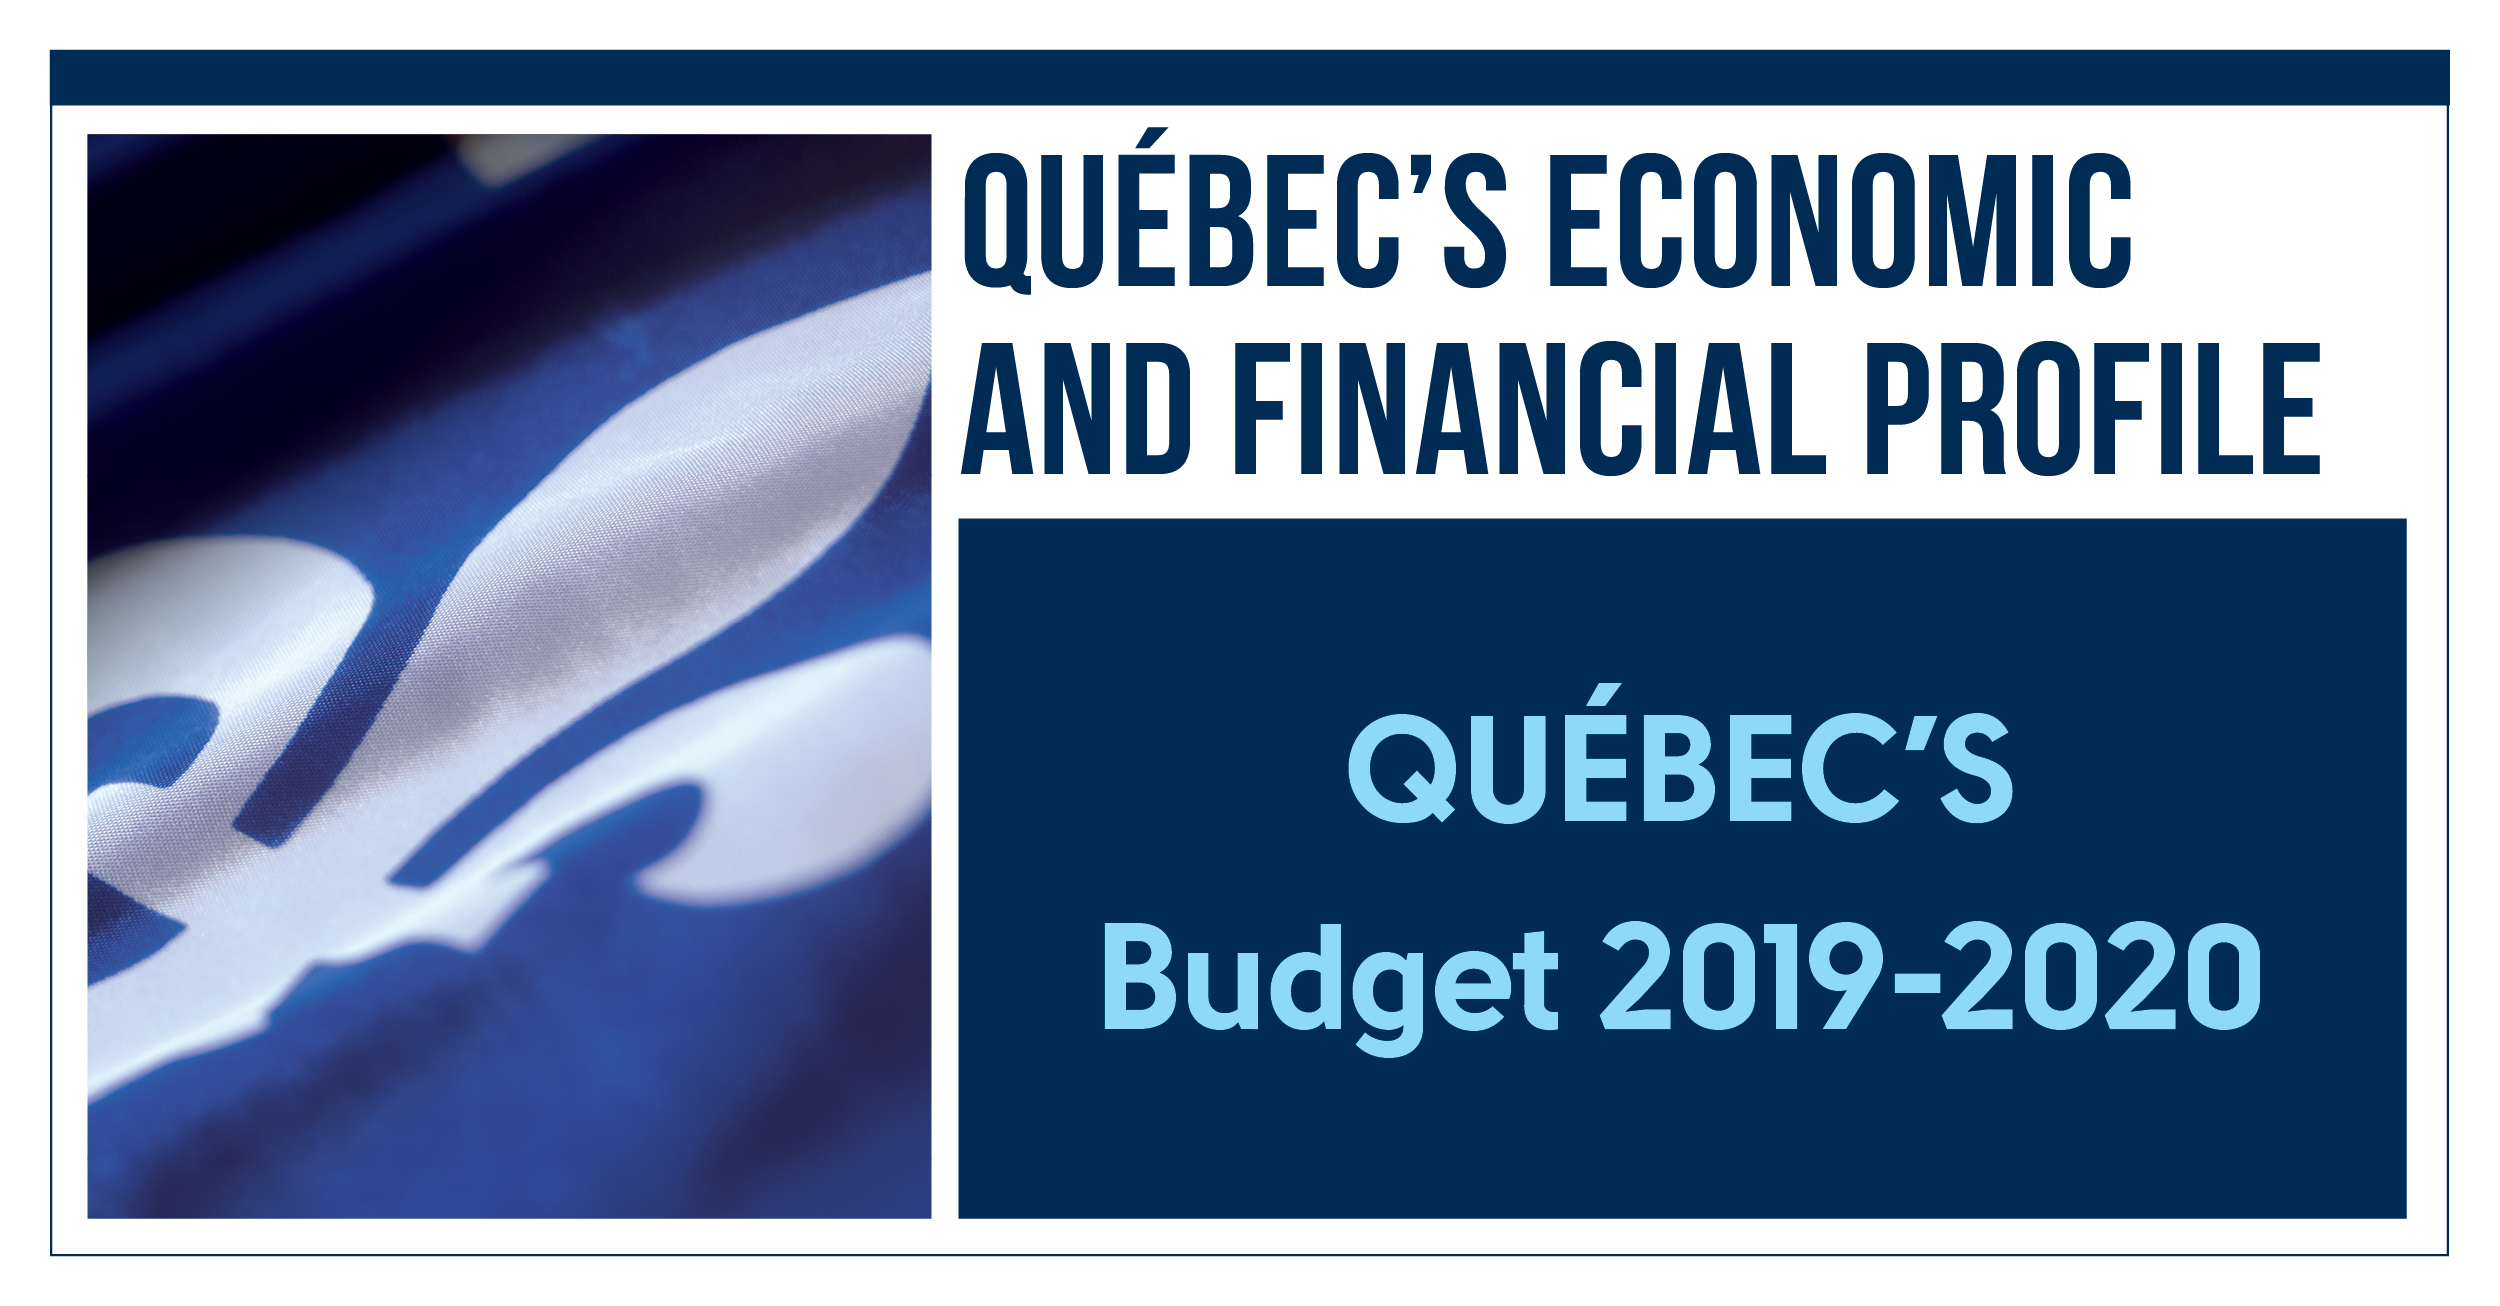 Quebec's econonomic and financial profile